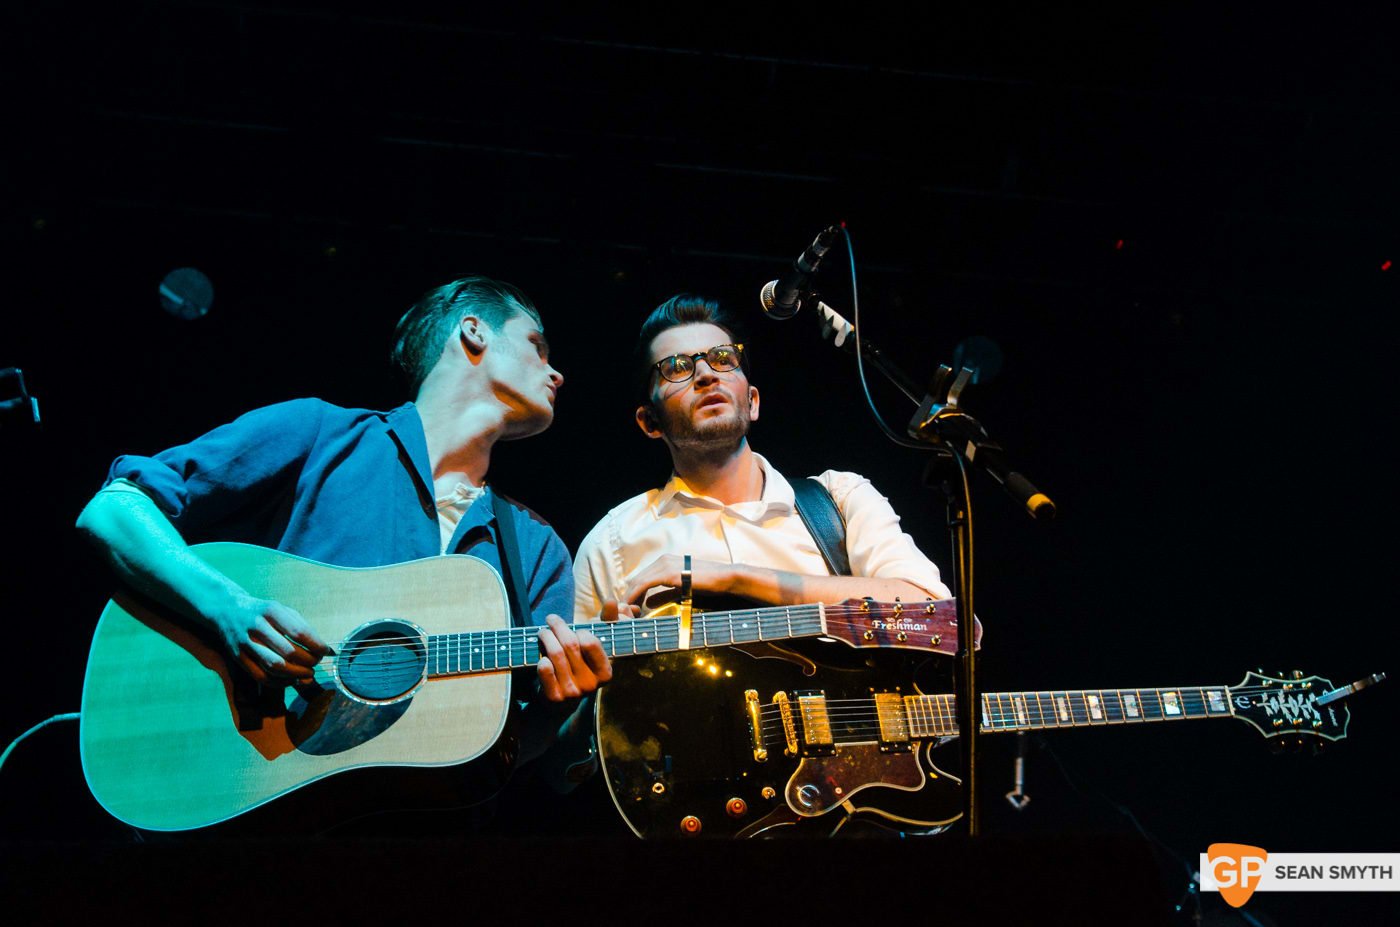 hudson-taylor-at-the-olympia-theatre-26-2-15-by-sean-smyth-17-of-26_16756759565_o